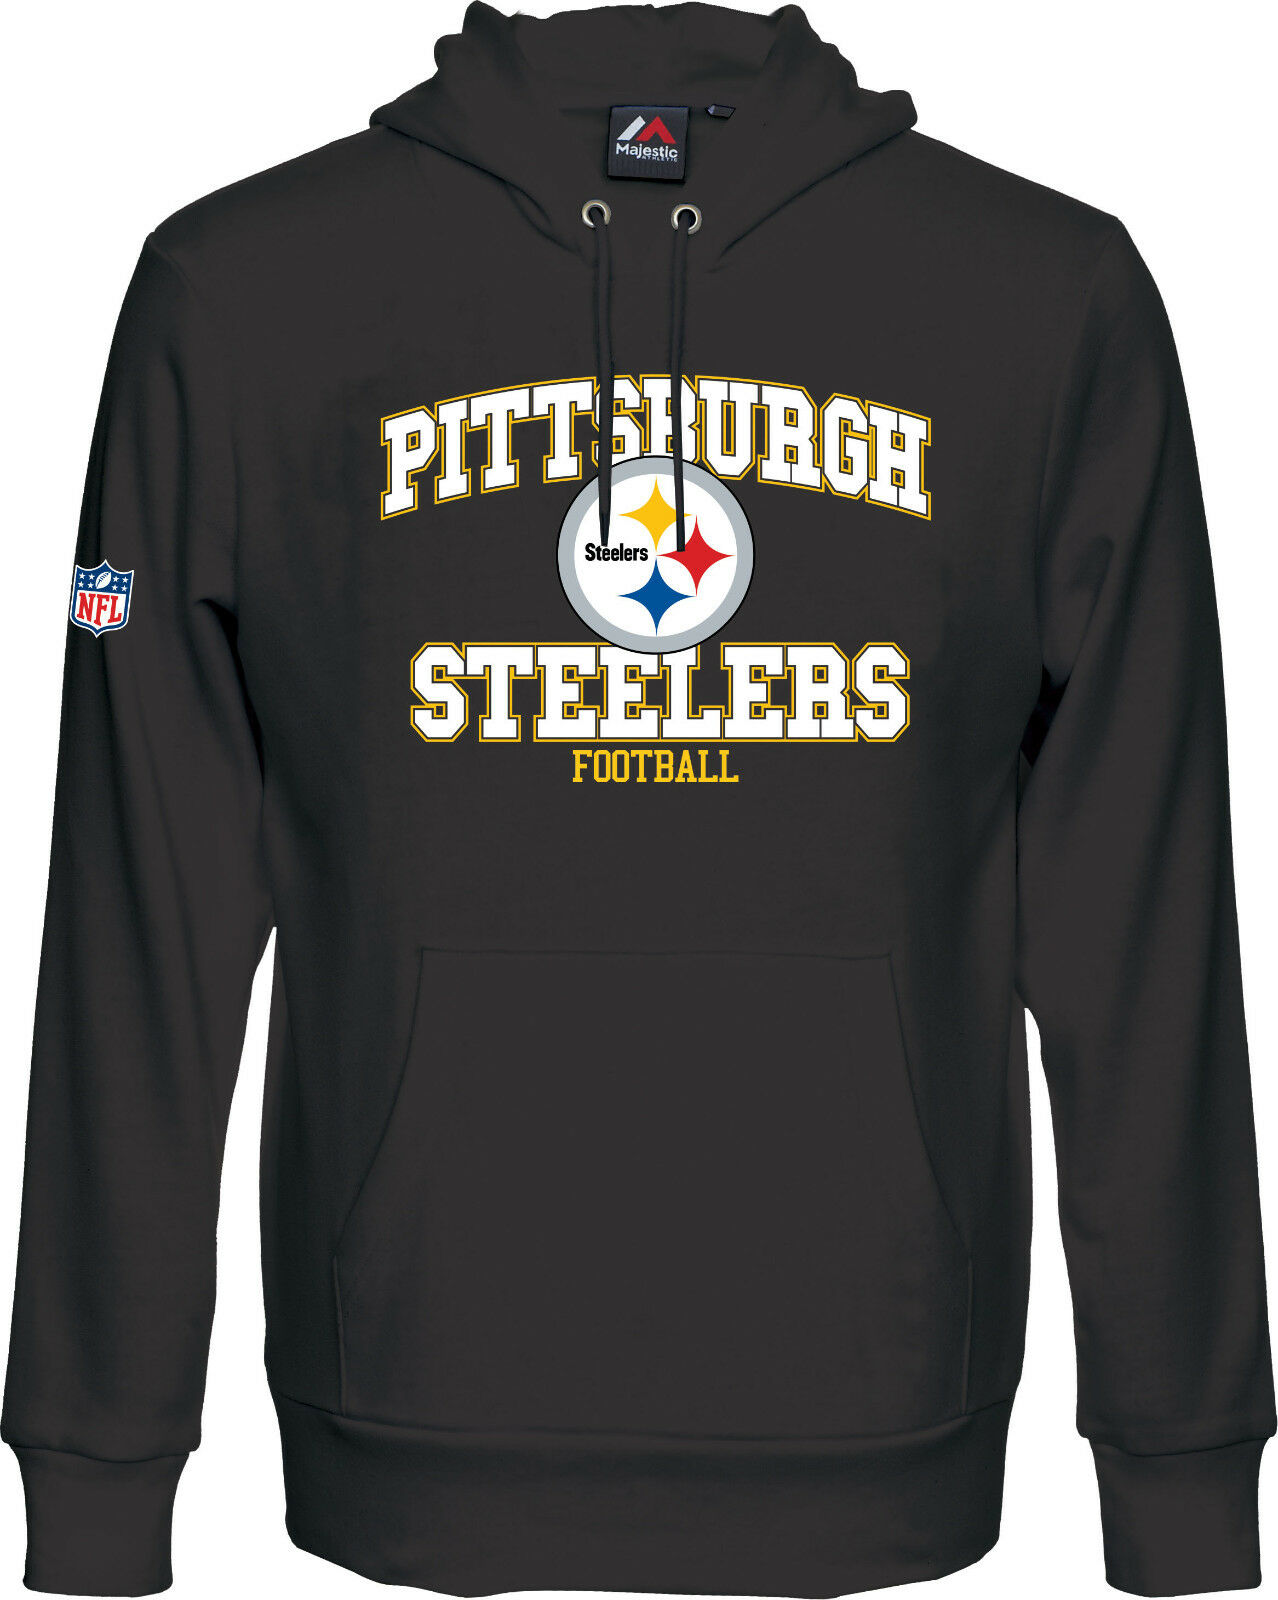 NFL Football PITTSBURGH STEELERS Hoody Hoody Hoody Kaputzenpullover Greatness hooded Sweater bef7b6